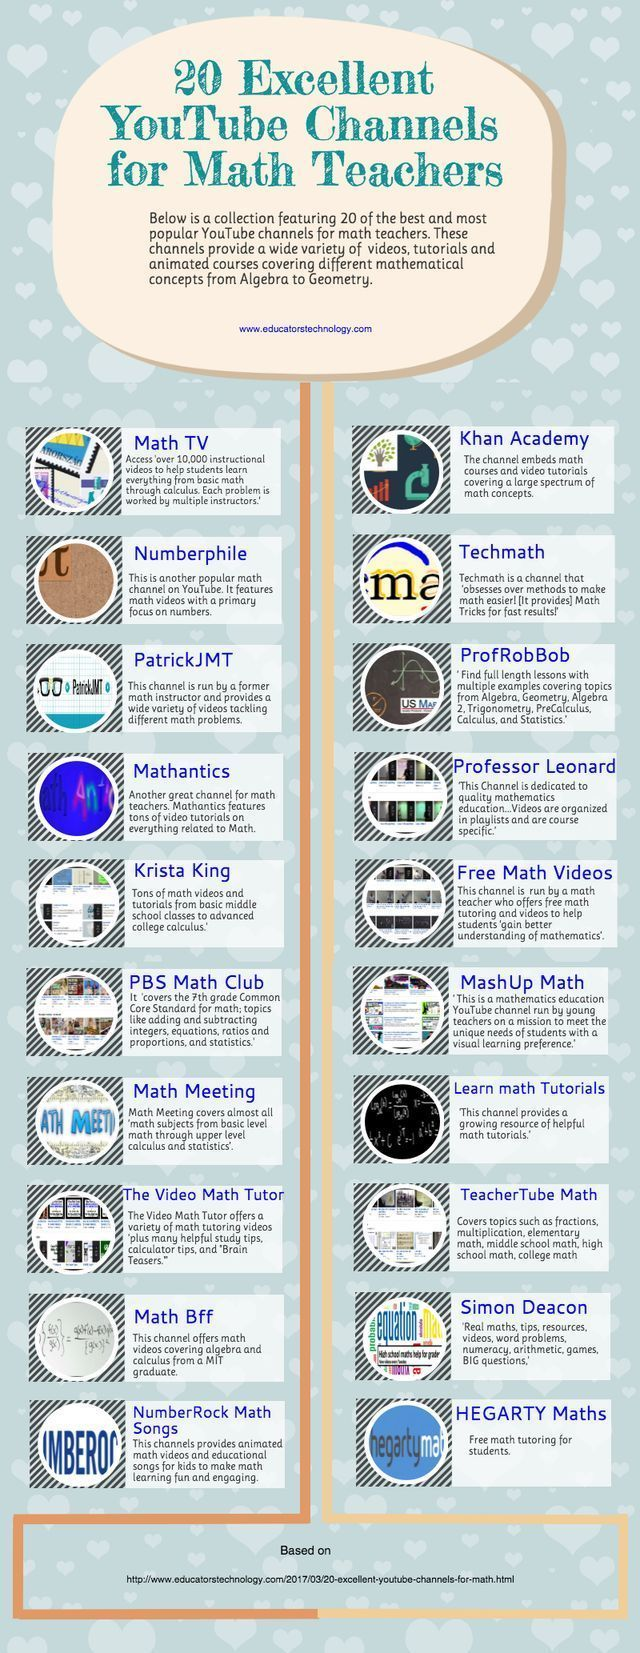 An Interesting Infographic Featuring 20 of The Best YouTube Channels for Math Teachers #mathlessonsonline